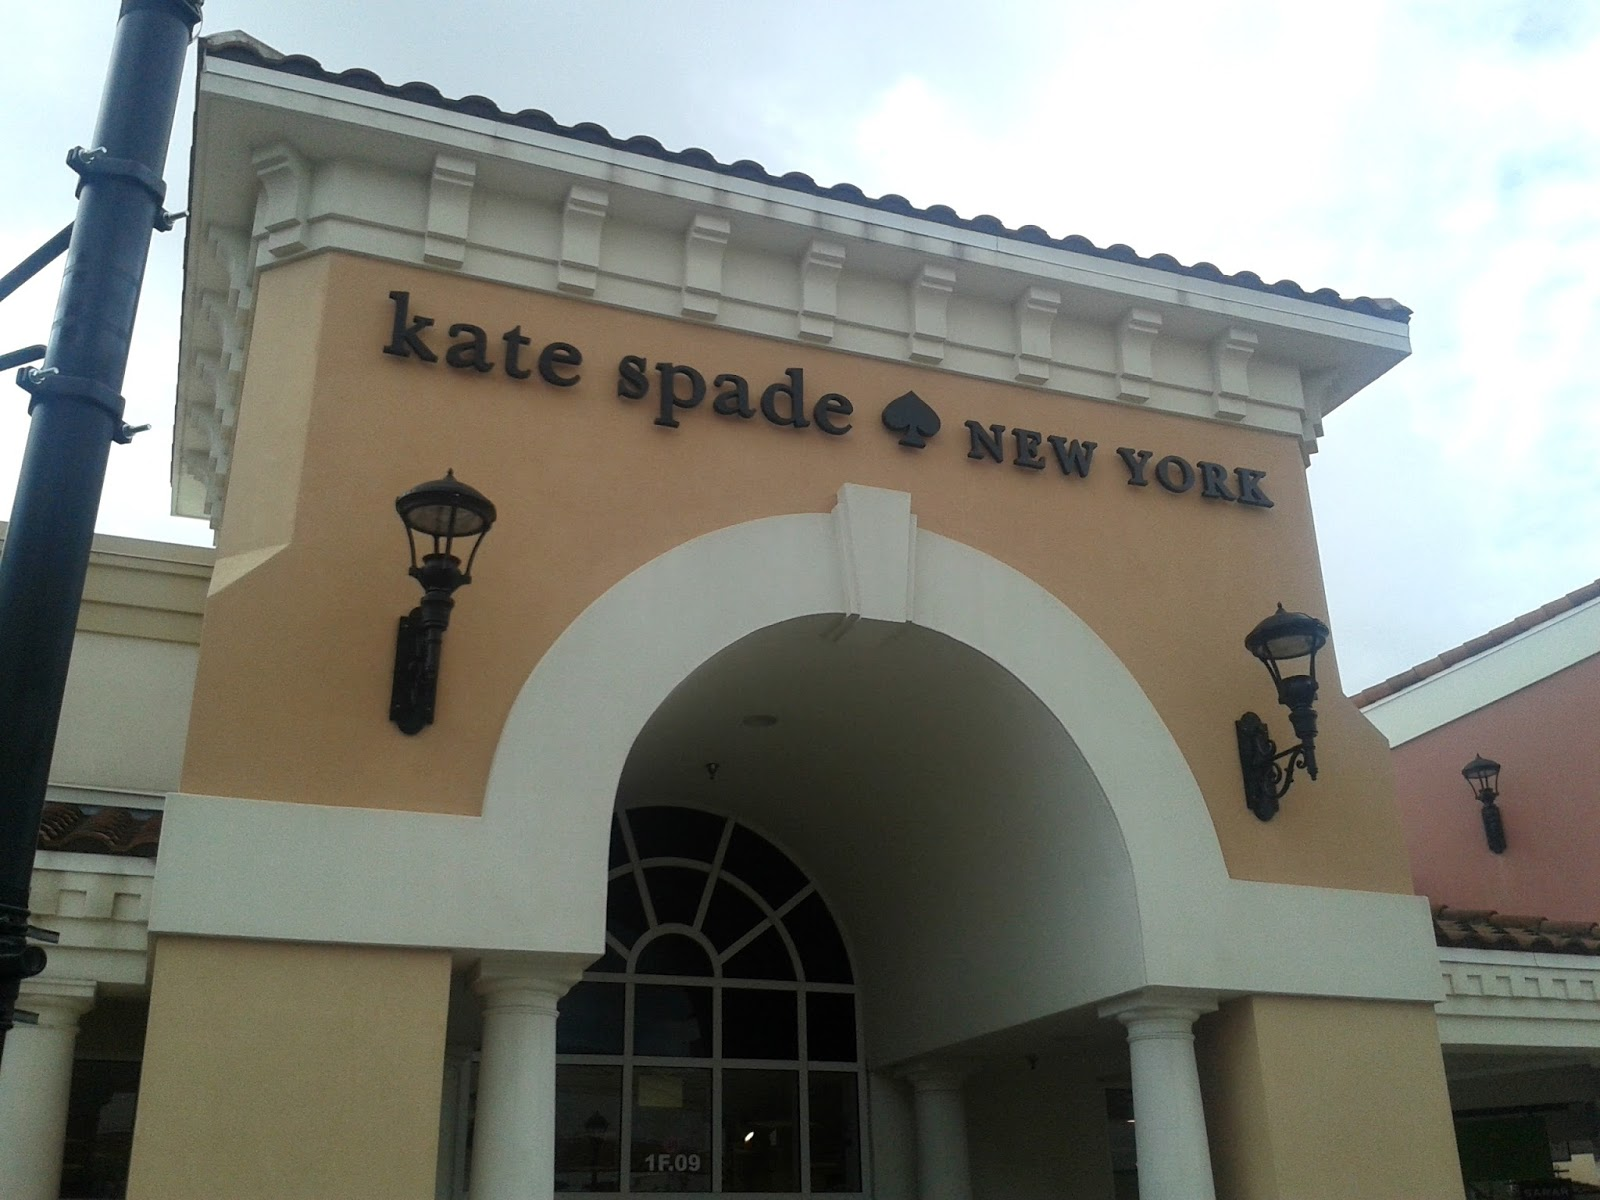 Orlando Outlets Kate Spade New York